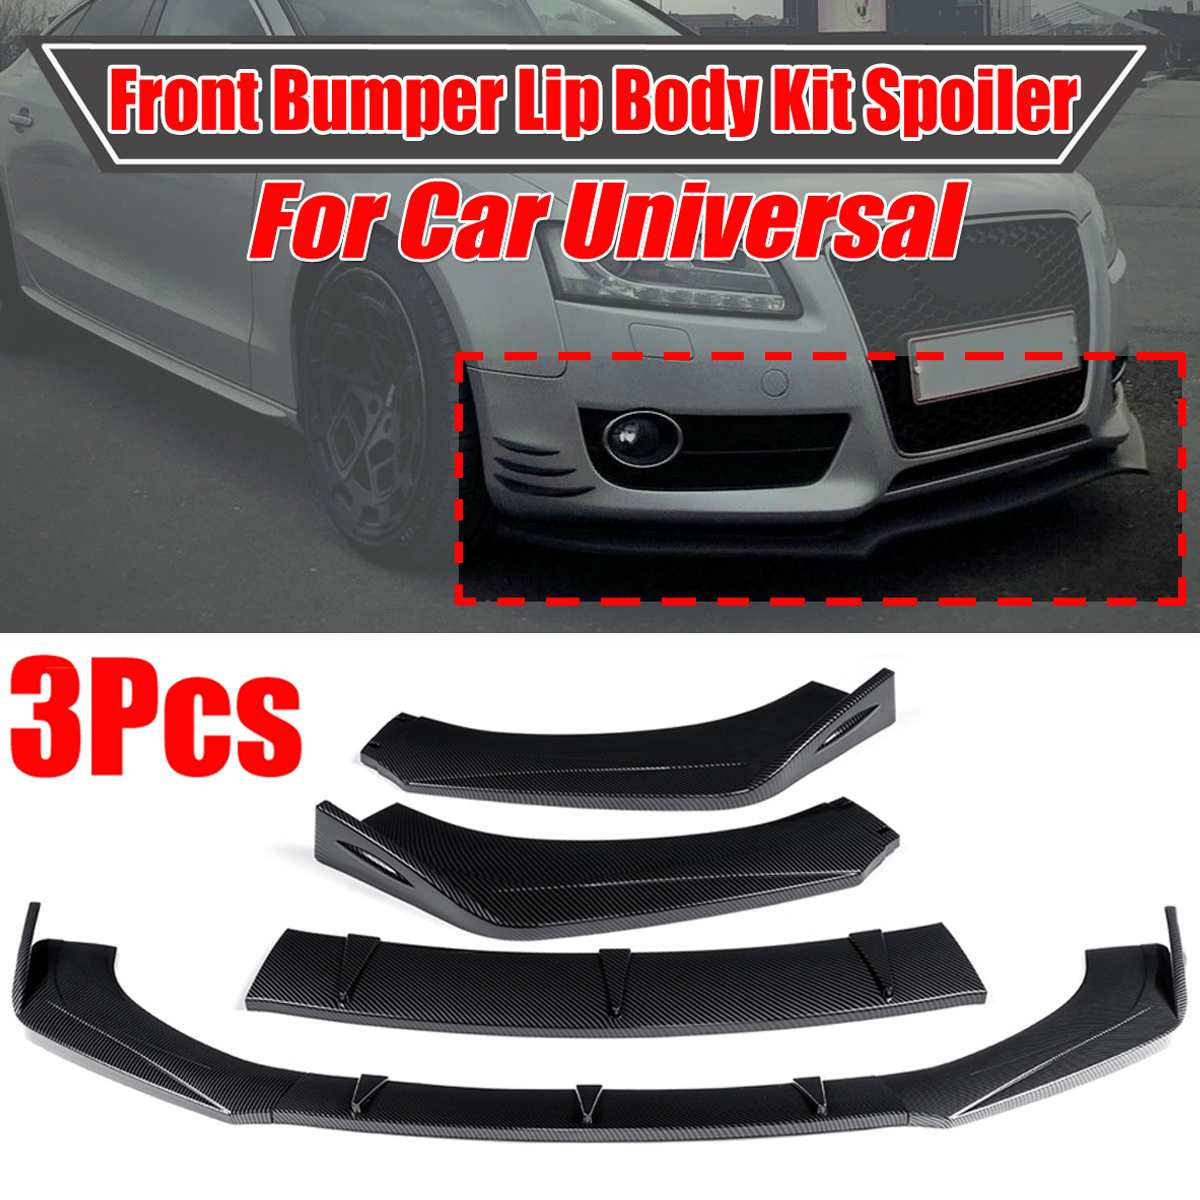 New Universal Car Front Bumper Splitter Lip <font><b>Body</b></font> <font><b>Kit</b></font> Spoiler Diffuser For <font><b>Audi</b></font> A5 Sline S5 <font><b>RS5</b></font> 09-16 For BMW For Benz For Mazad image